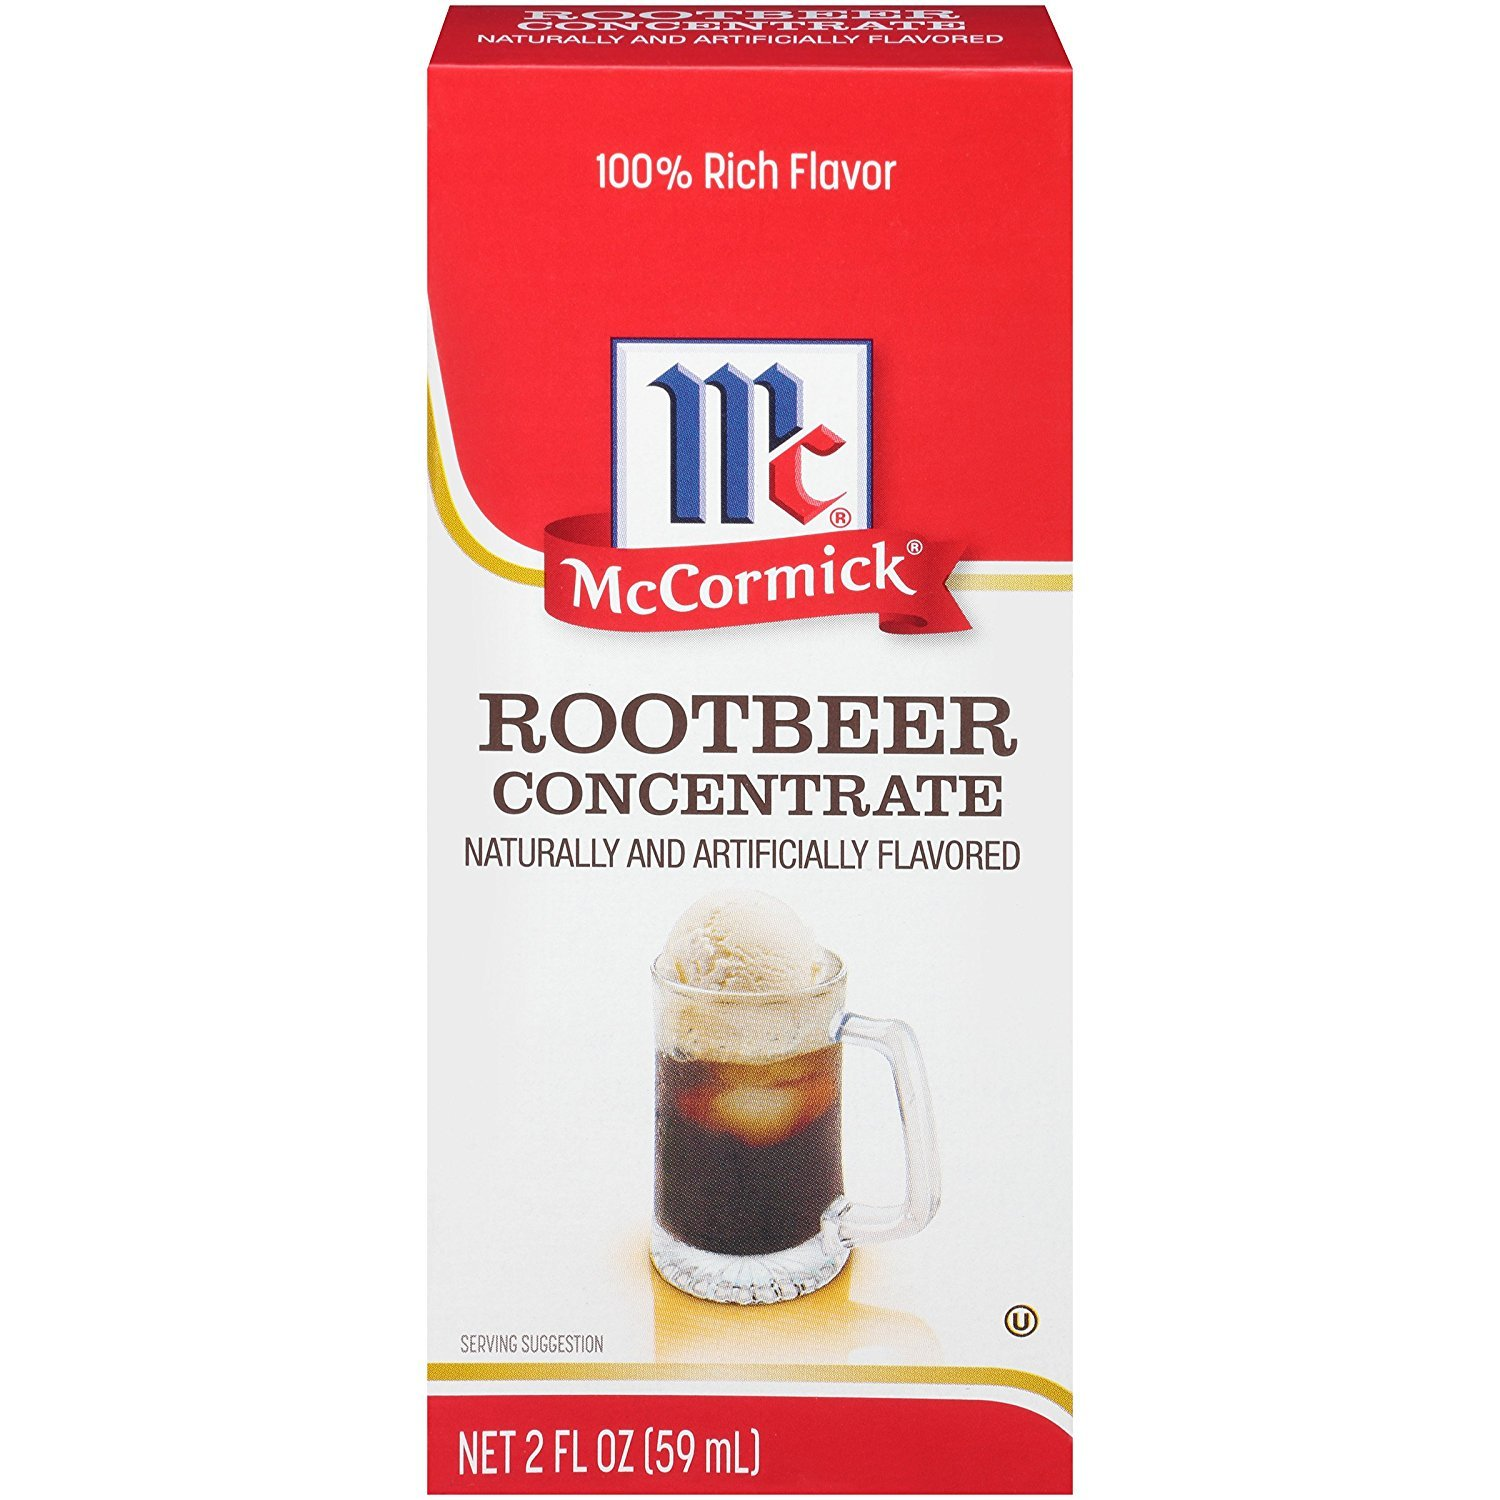 McCormick Natural & Artificial Flavored Root Beer Concentrate, 2 fl oz (Pack - 6) by McCormick